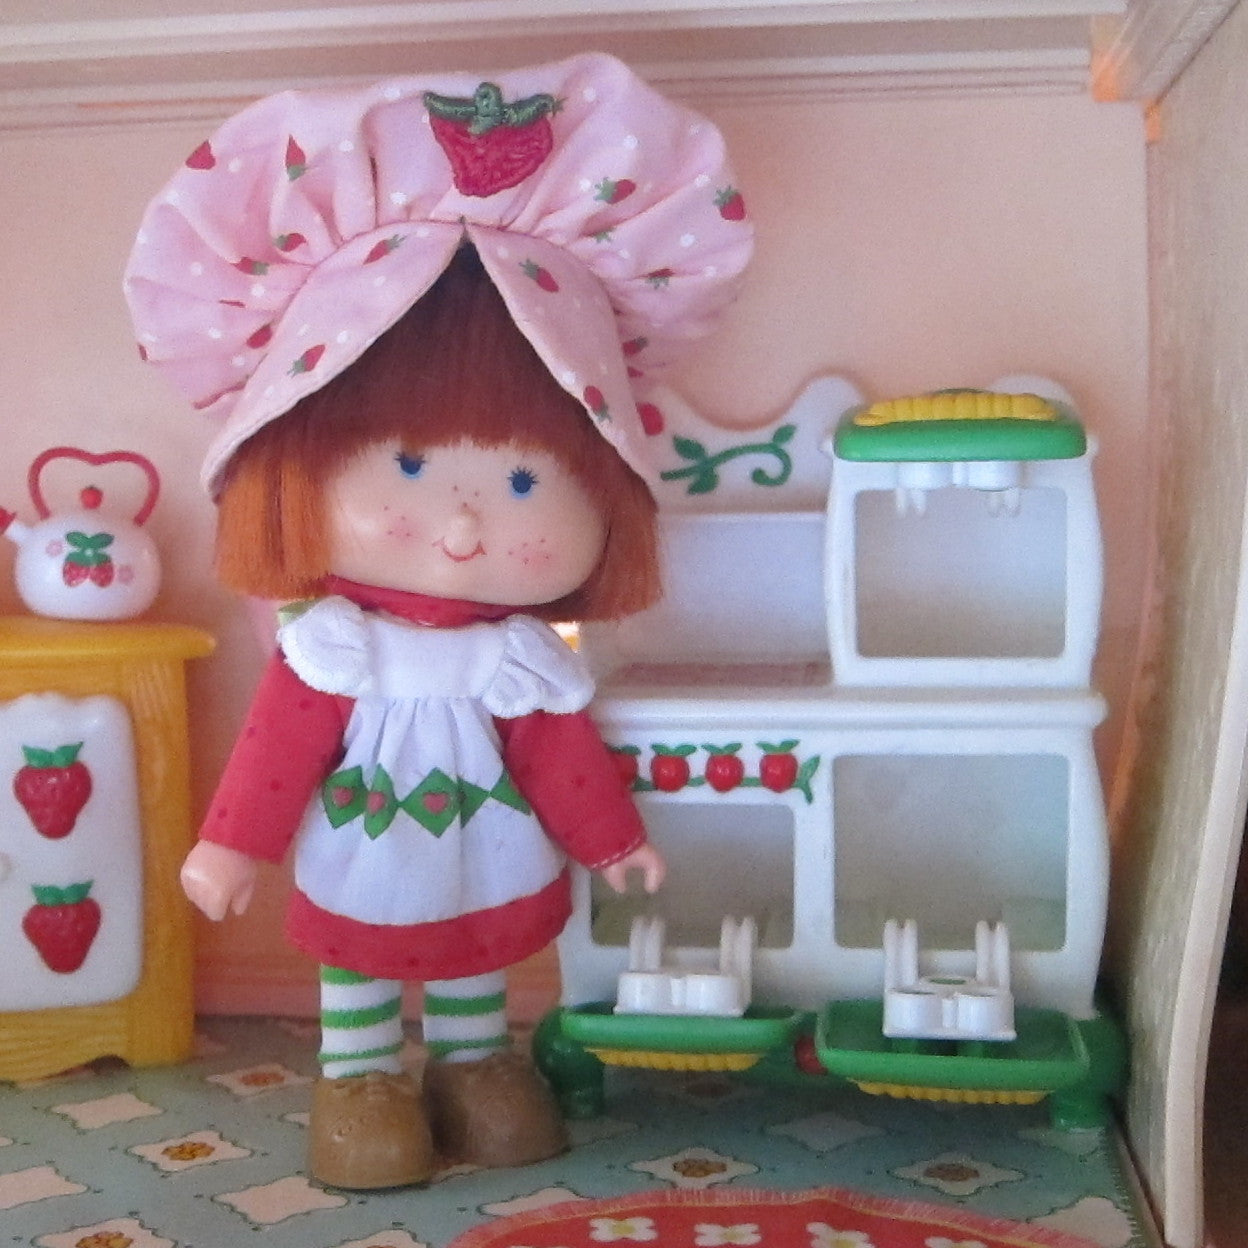 Kitchen Stove Oven For Strawberry Shortcake Berry Happy